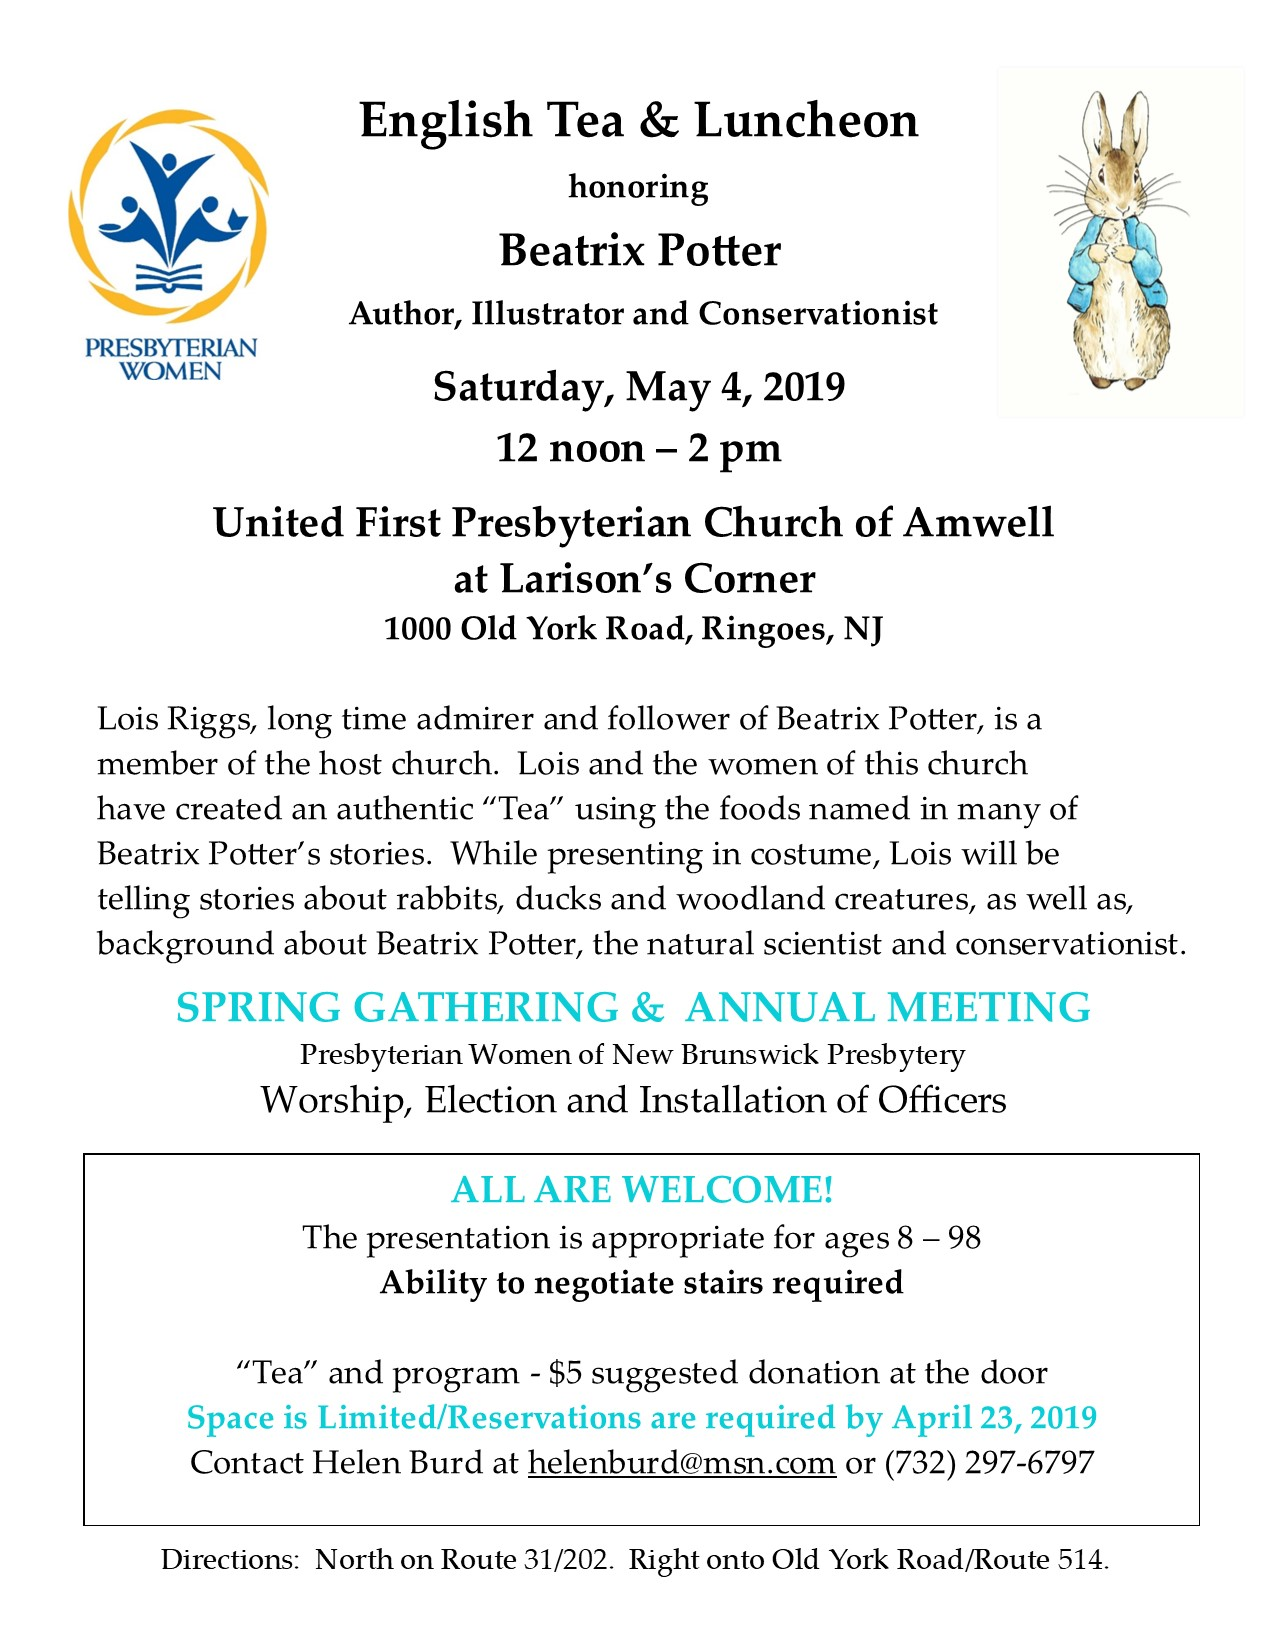 Beatrix Potter flyer